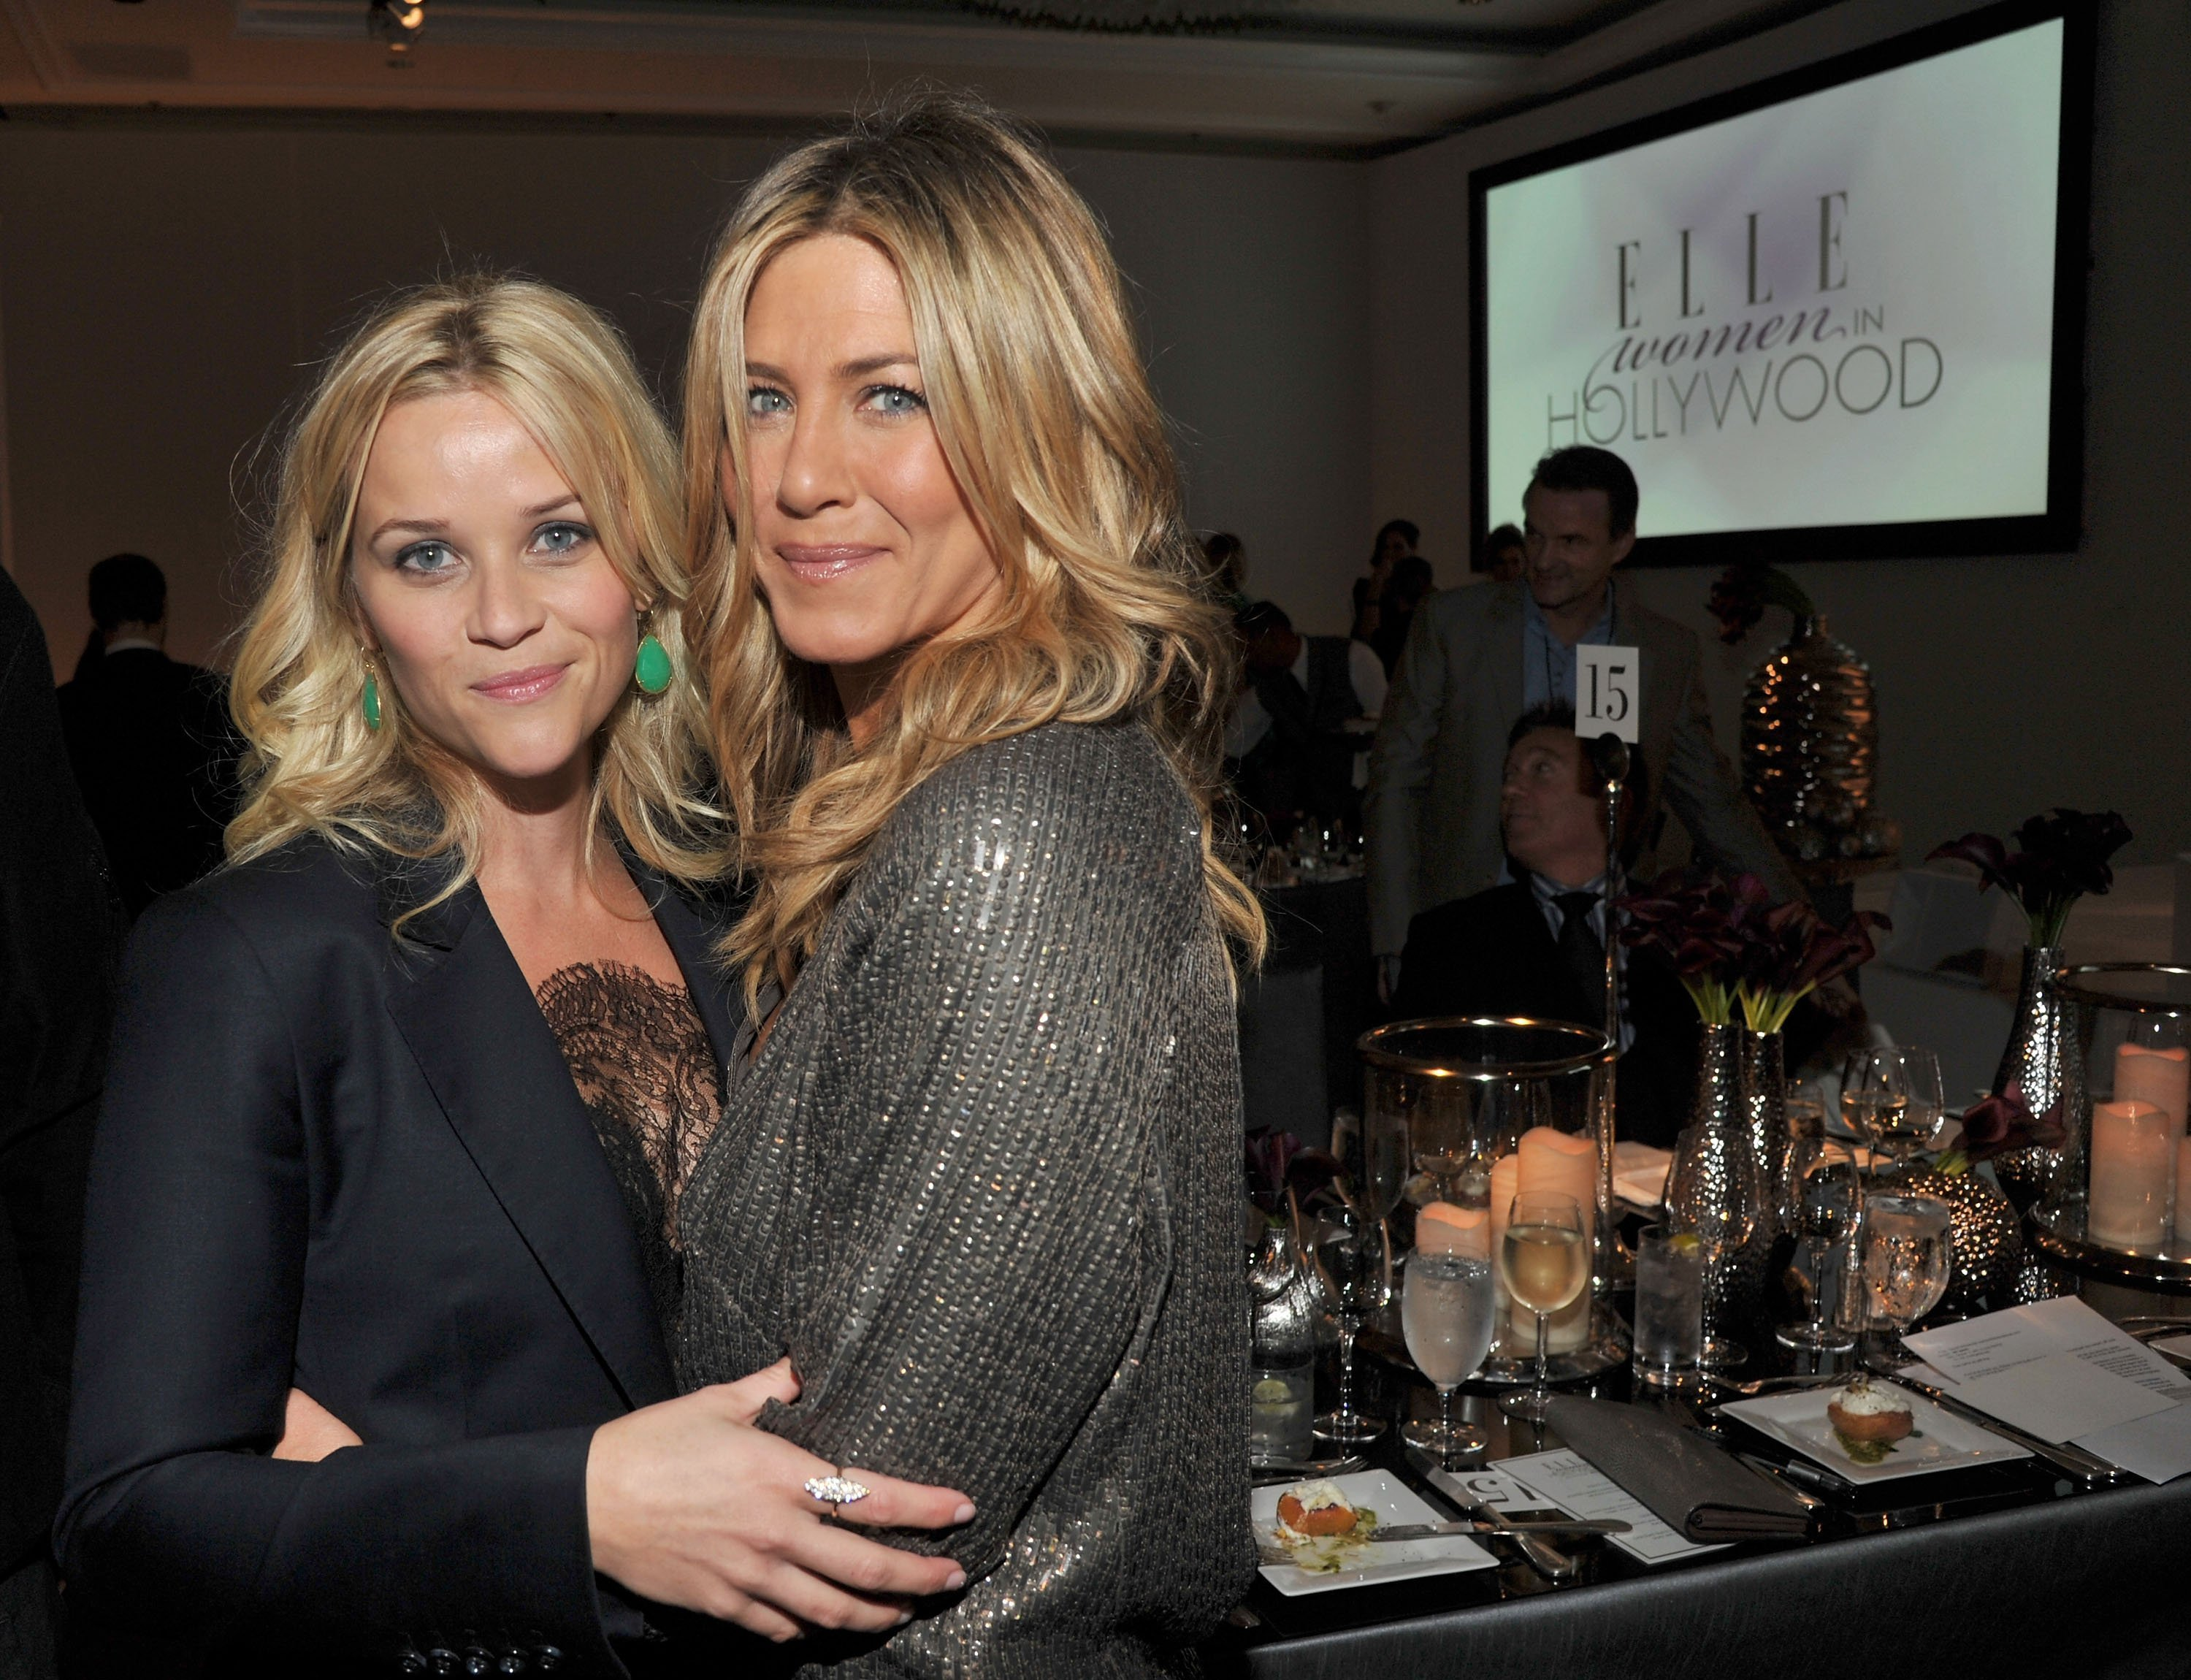 Reese Witherspoon (L) and Jennifer Aniston attend ELLE's 18th Annual Women in Hollywood Tribute on October 17, 2011 in Beverly Hills, California. | Source: Getty Images.